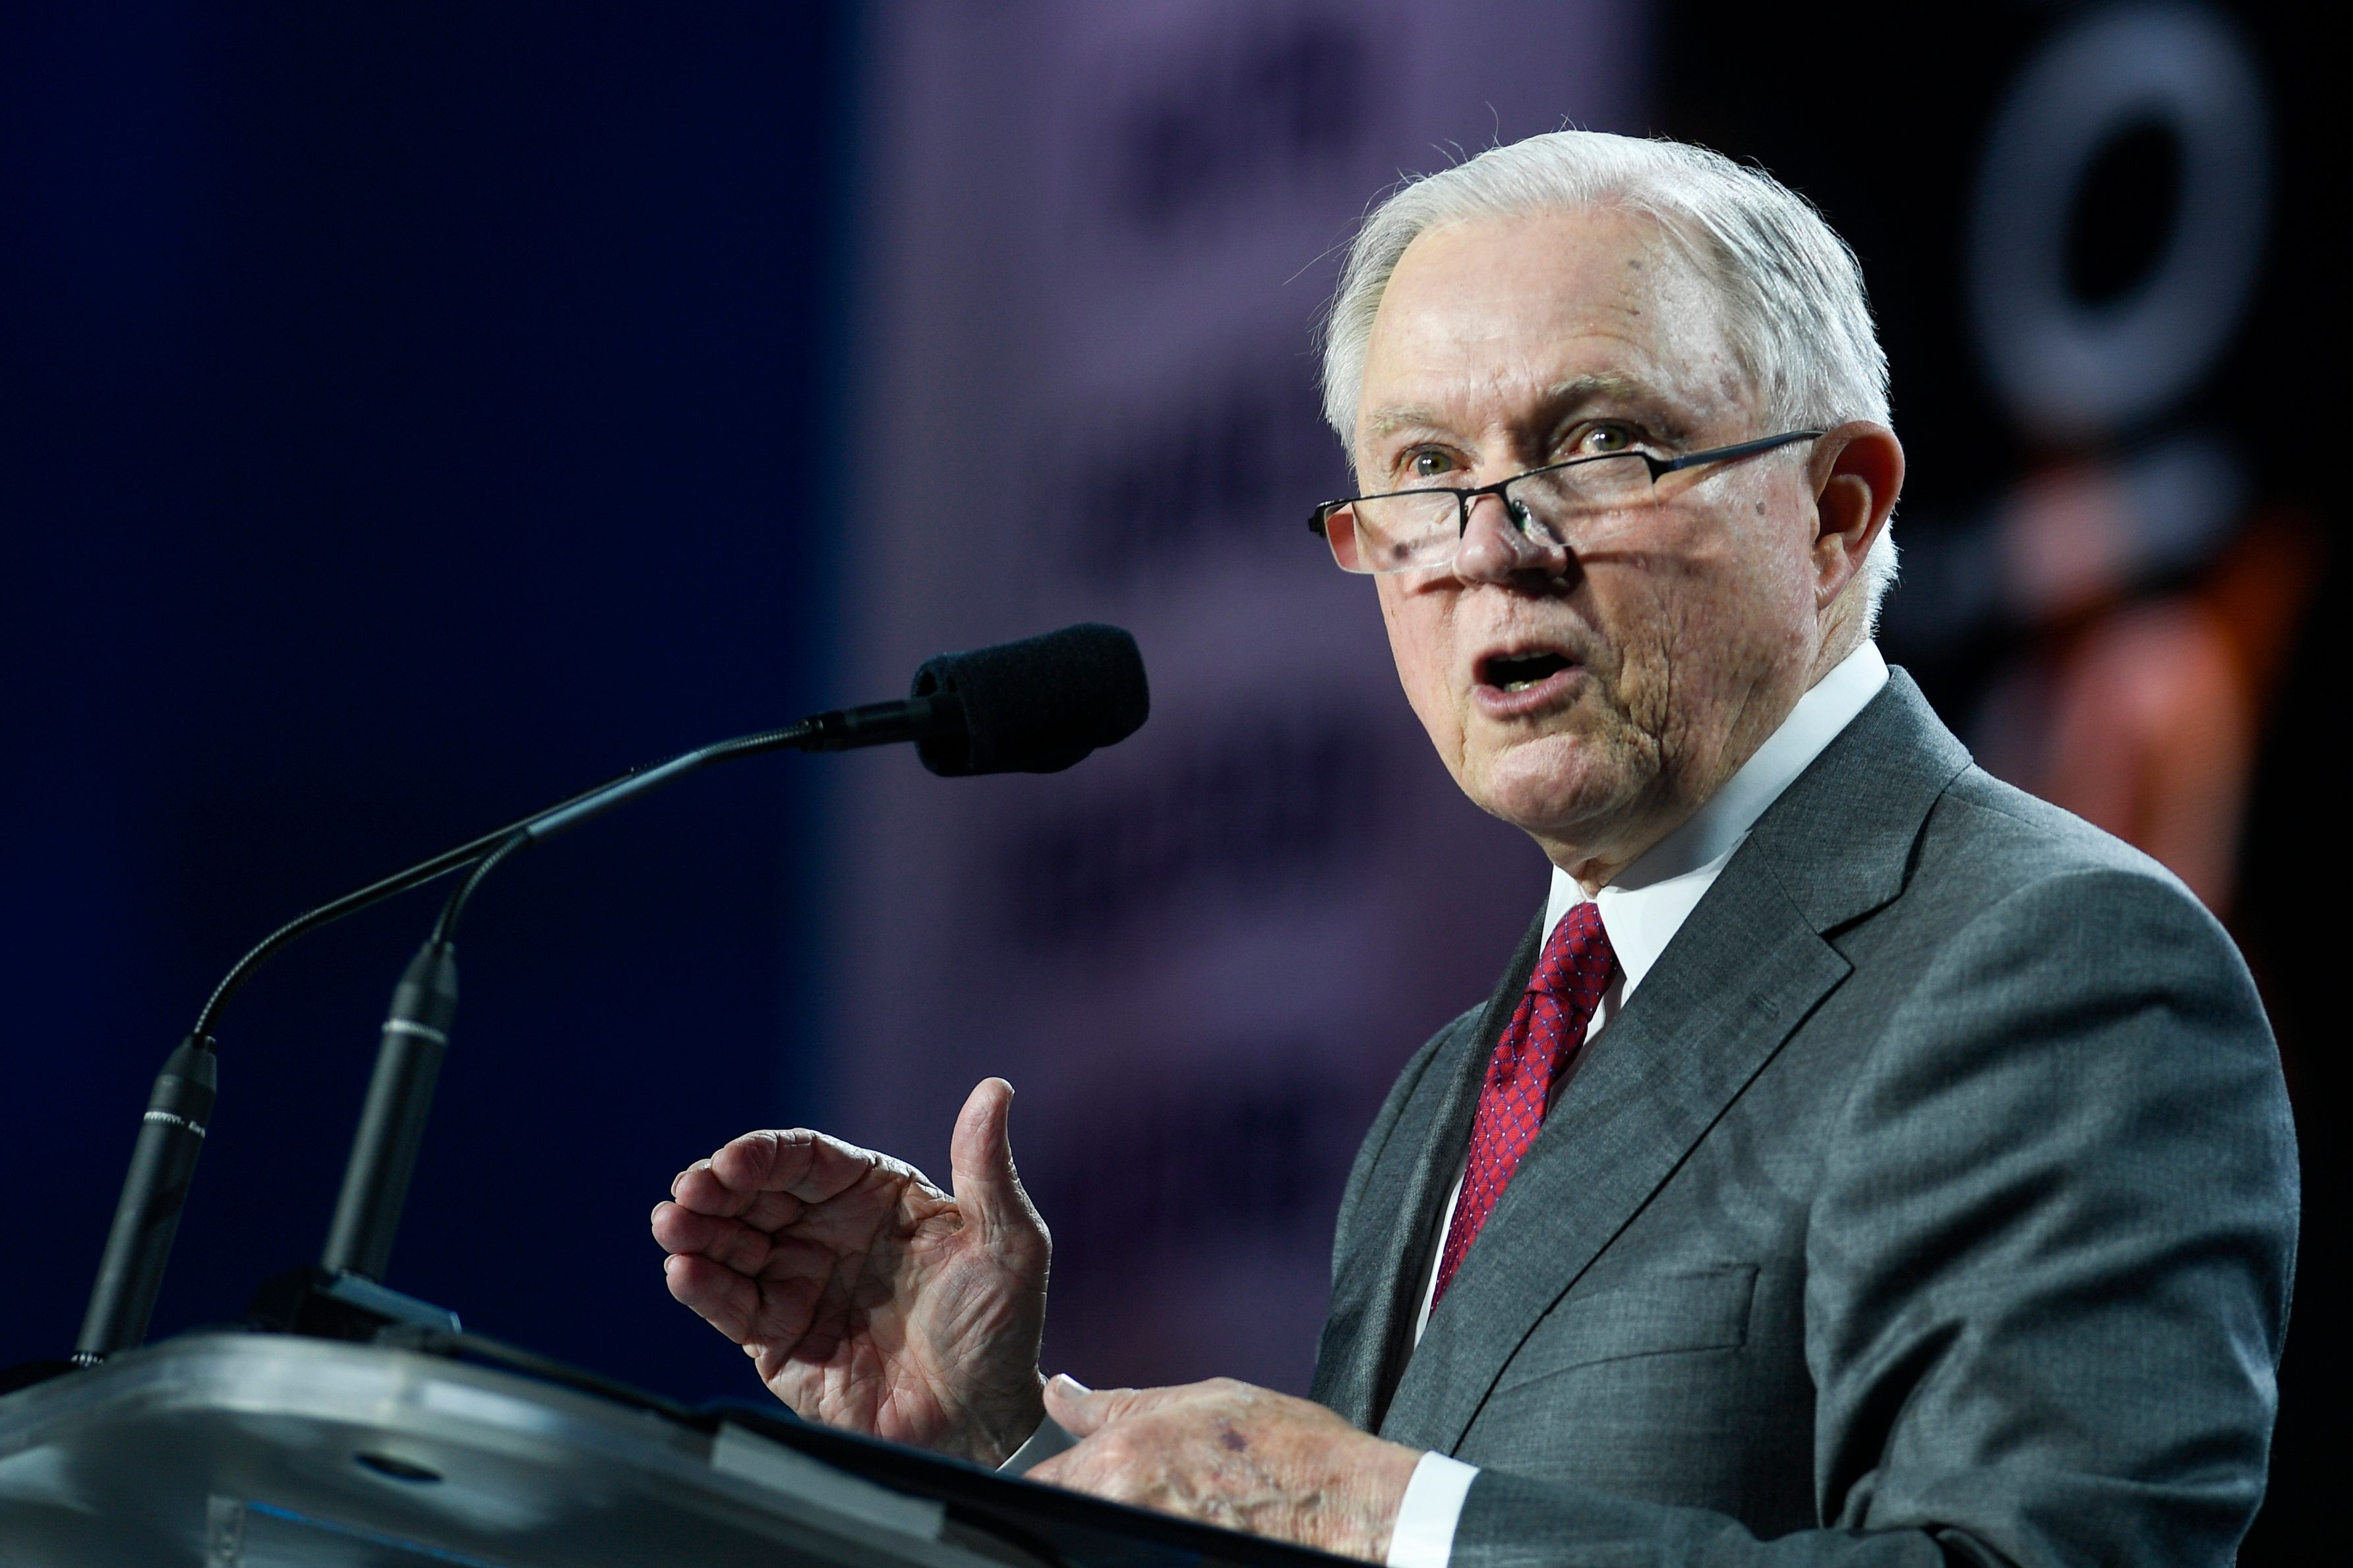 Attorney General Jeff Sessions spoke directly to immigration judges at an annual Executive Office for Immigration Review trai